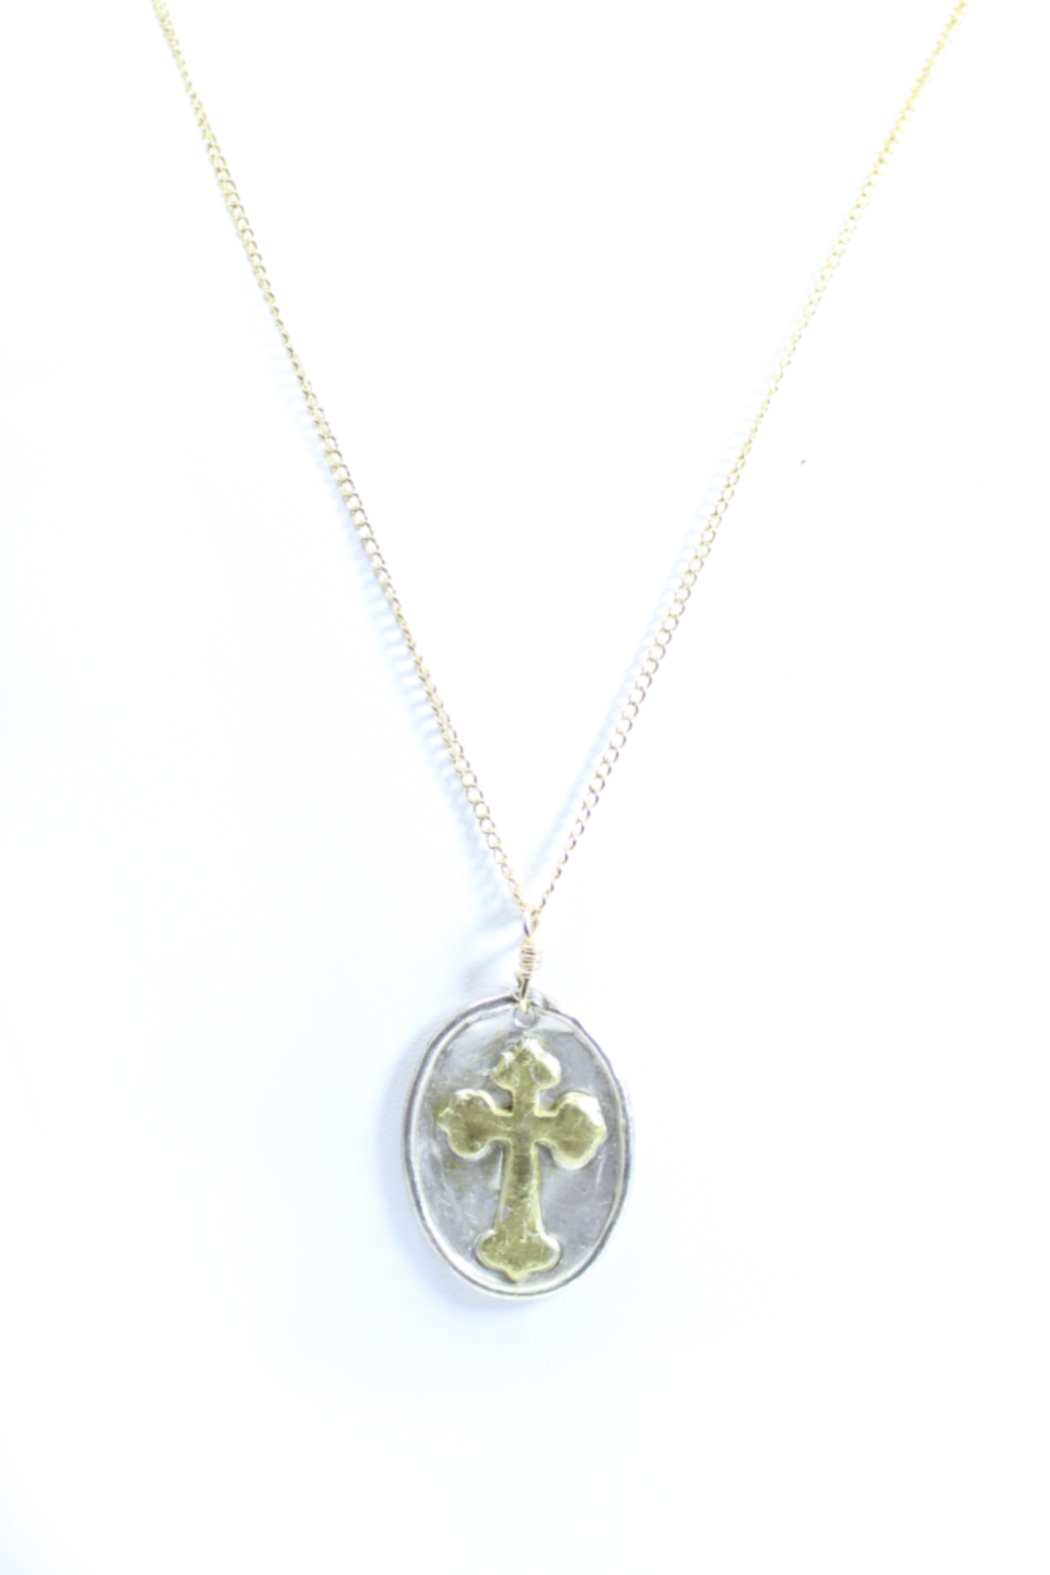 The Birds Nest LARGE OVAL CROSS NECKLACE - 17 INCH CHAIN - Main Image